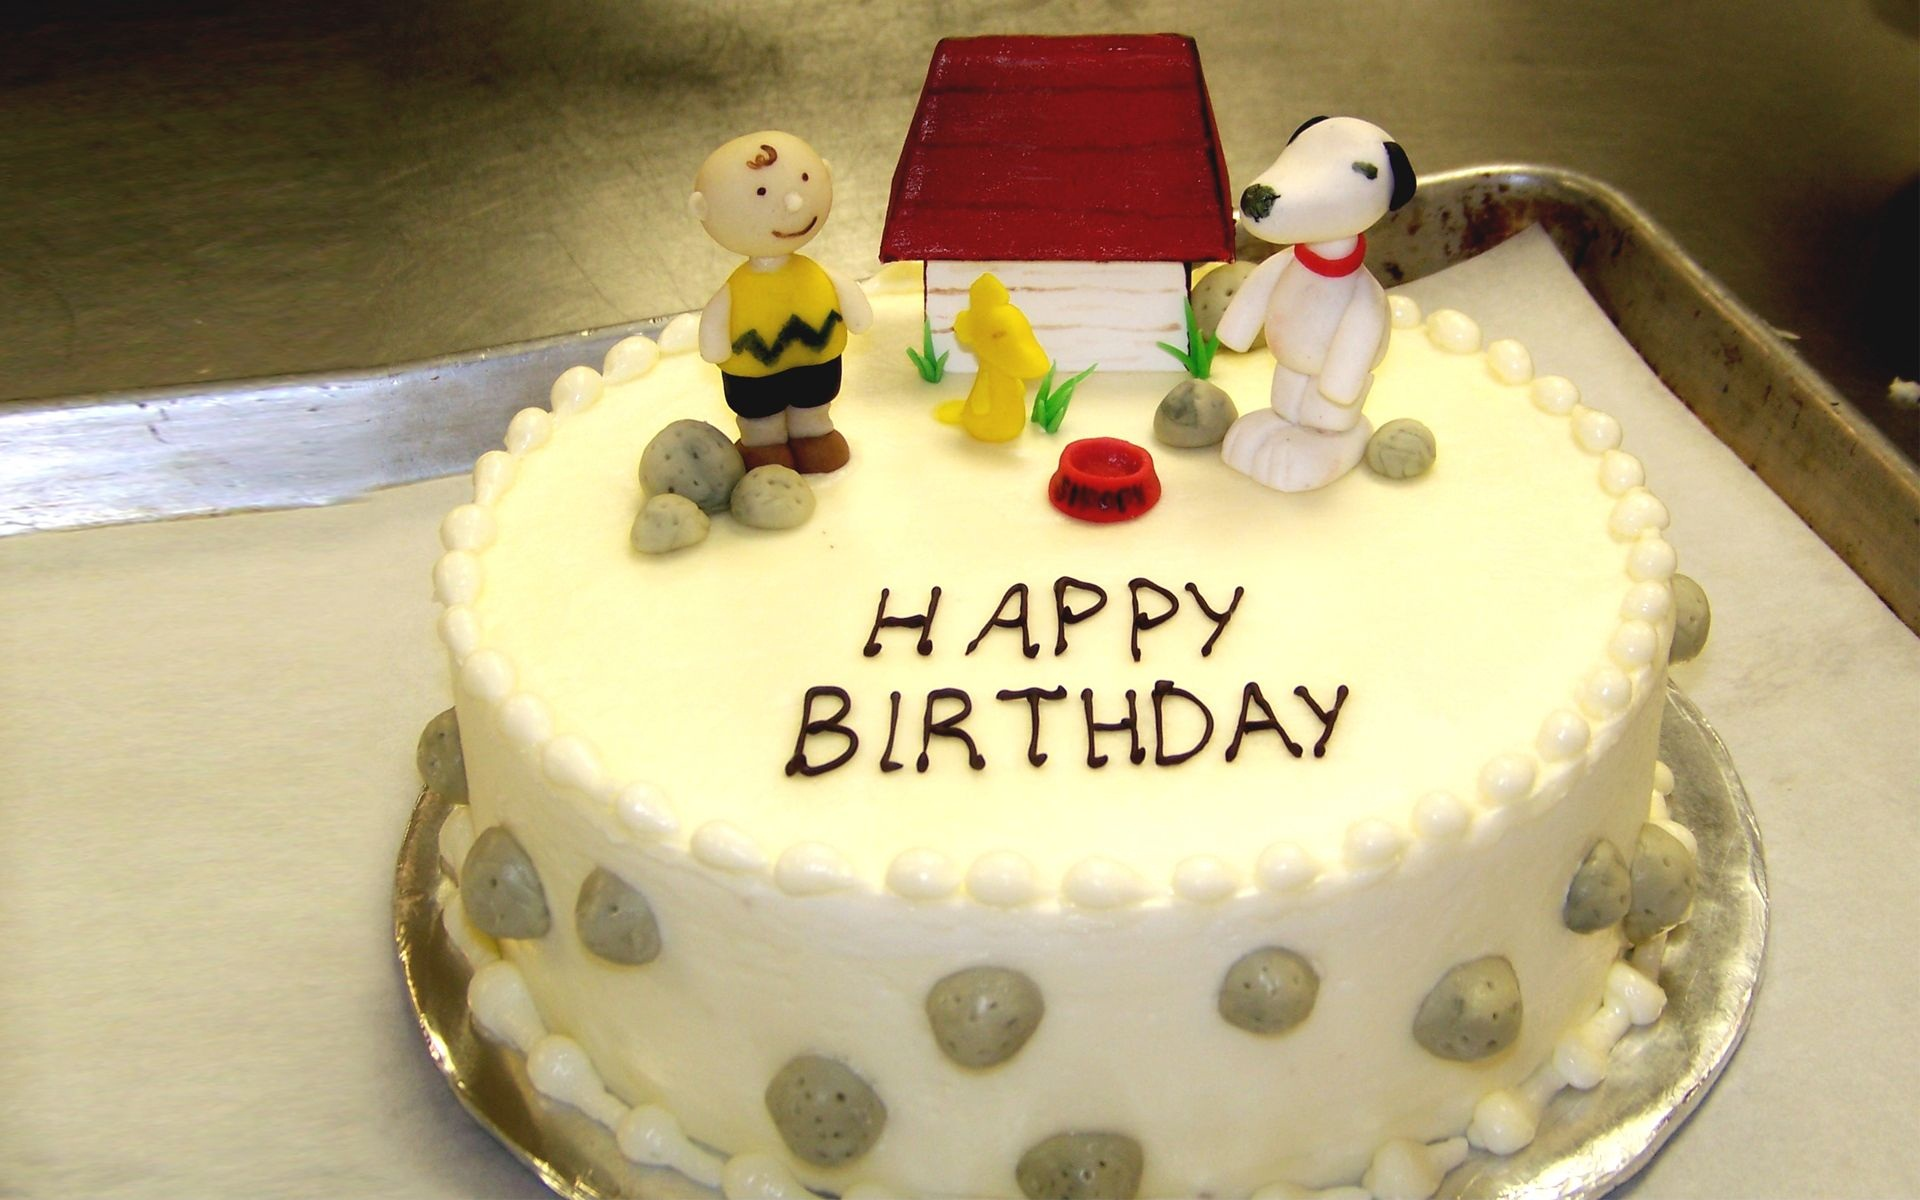 happy birthday image download for mobile ; 36683402-happy-birthday-hd-images